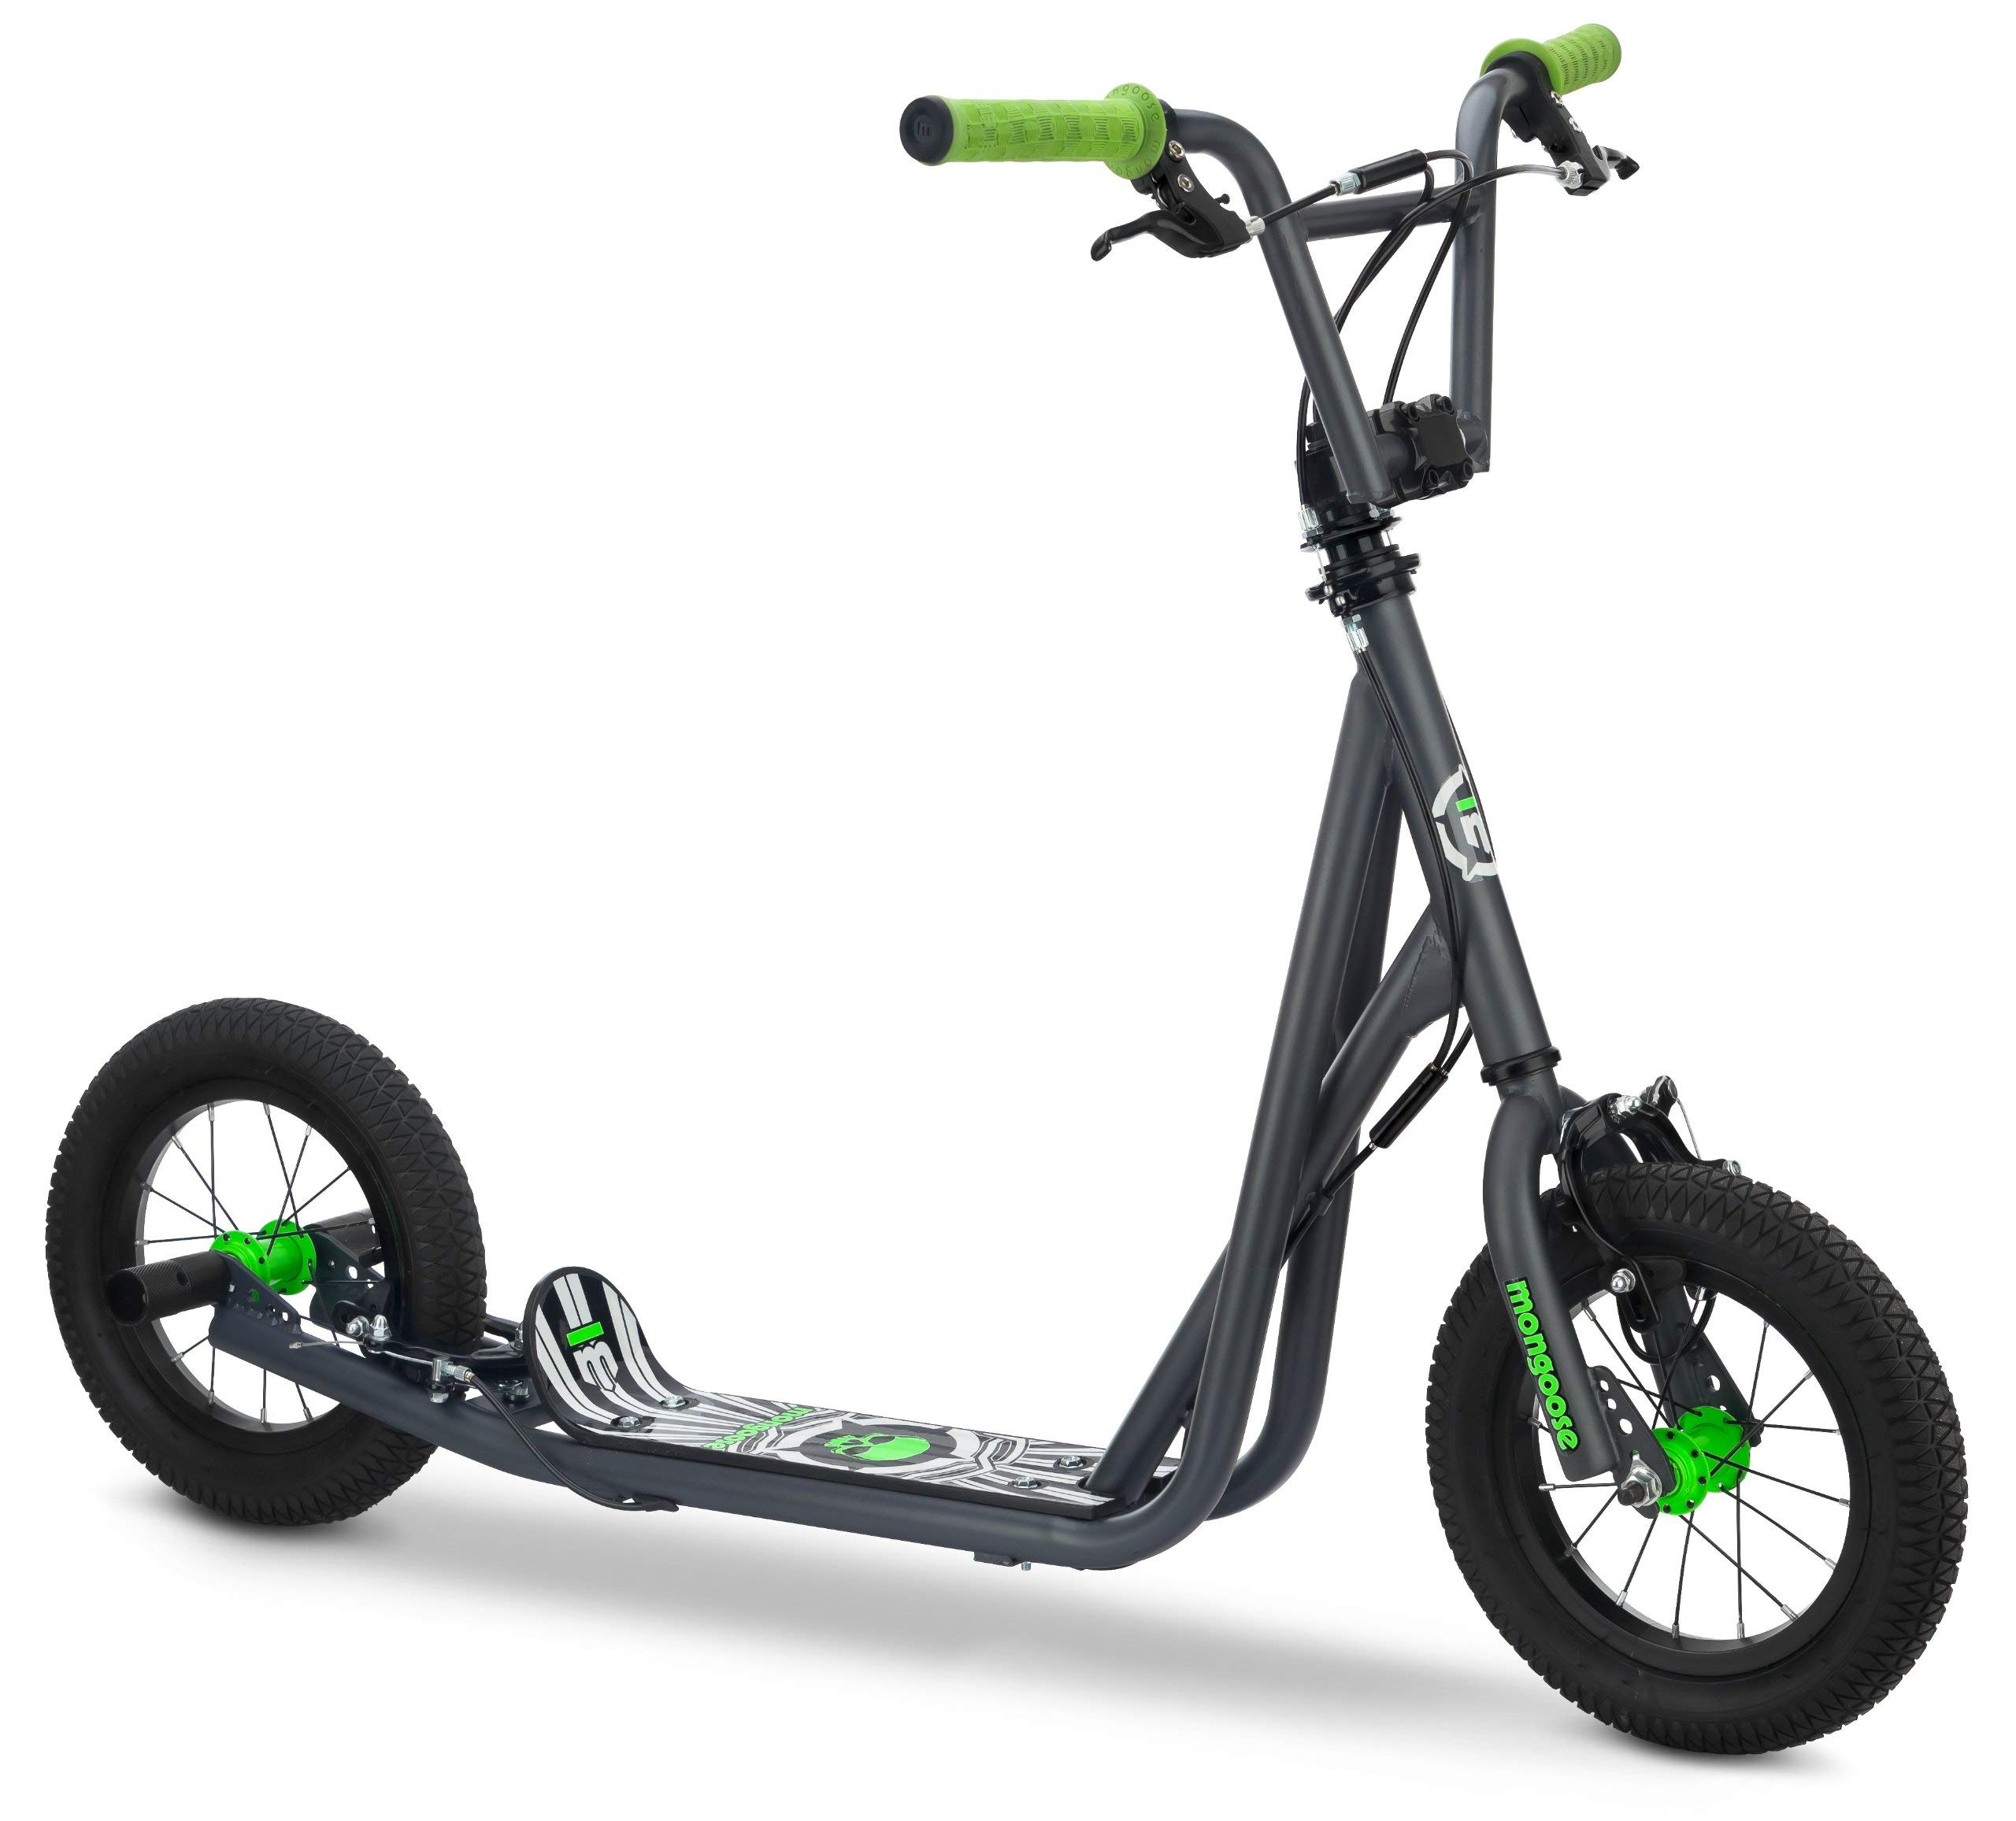 Mongoose Air Tire Kids Scooter, 12-Inch Air-Inflated Wheels, Grey (Renewed) by Mongoose